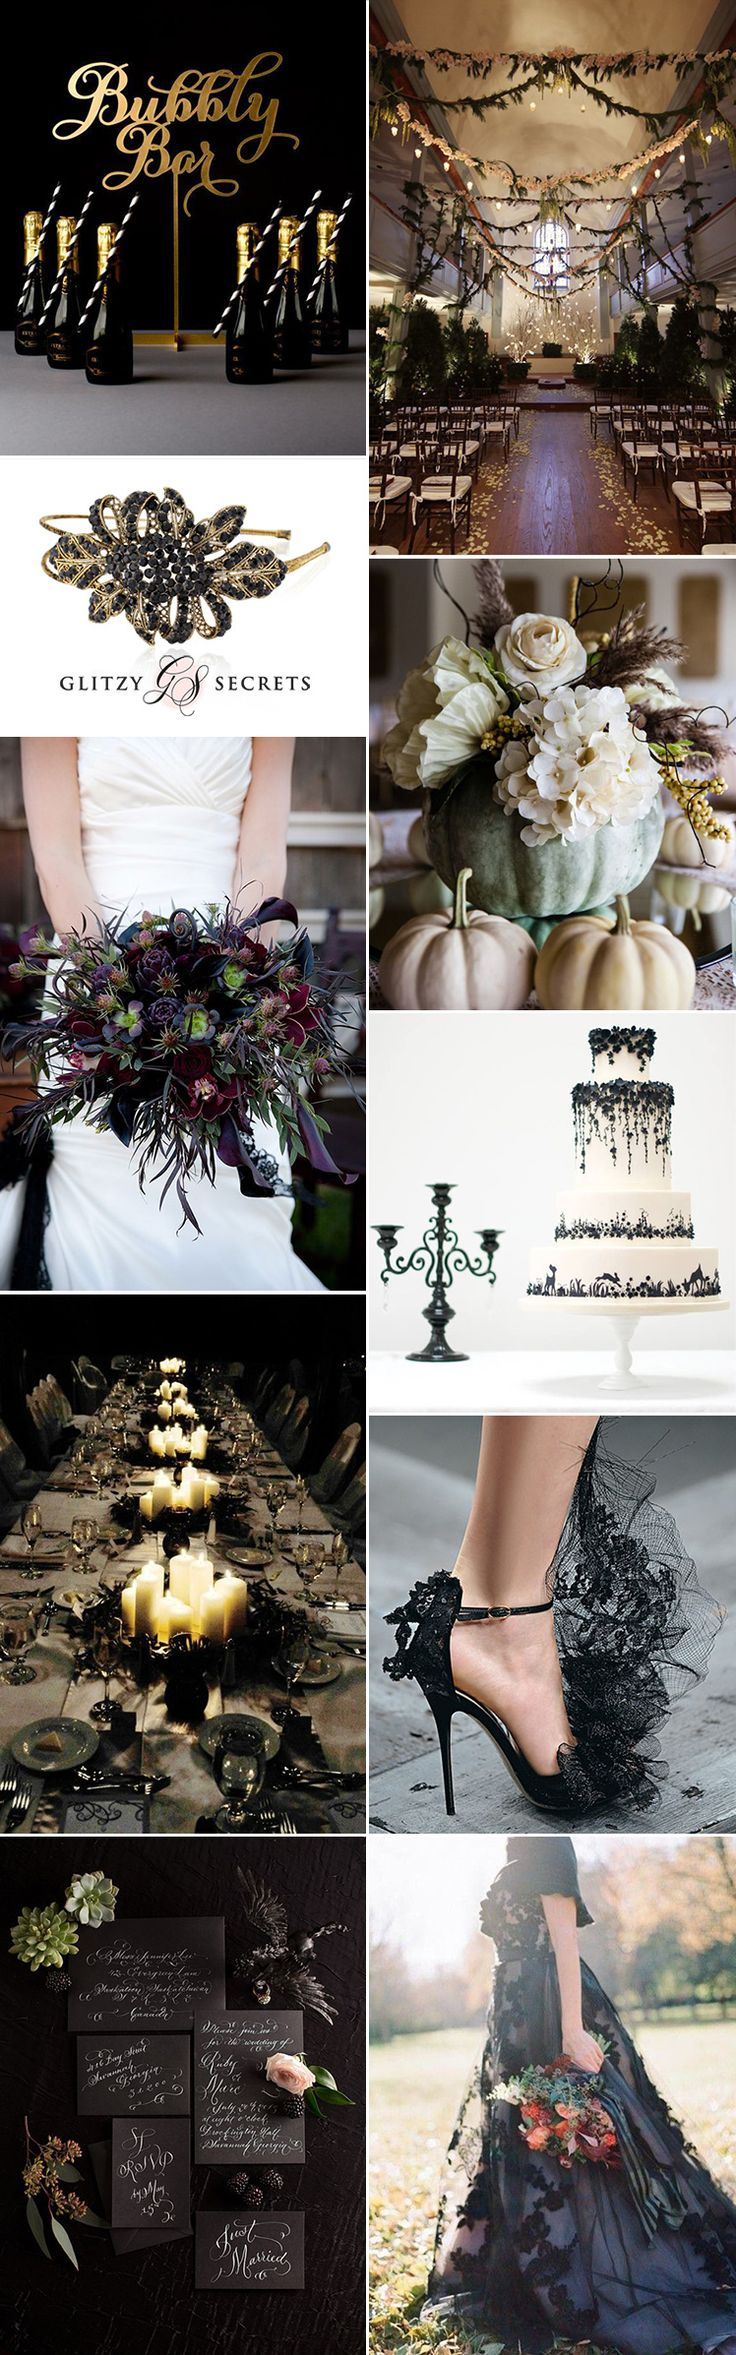 A Halloween wedding with elegance - Glitzy Secrets - GS Inspiration